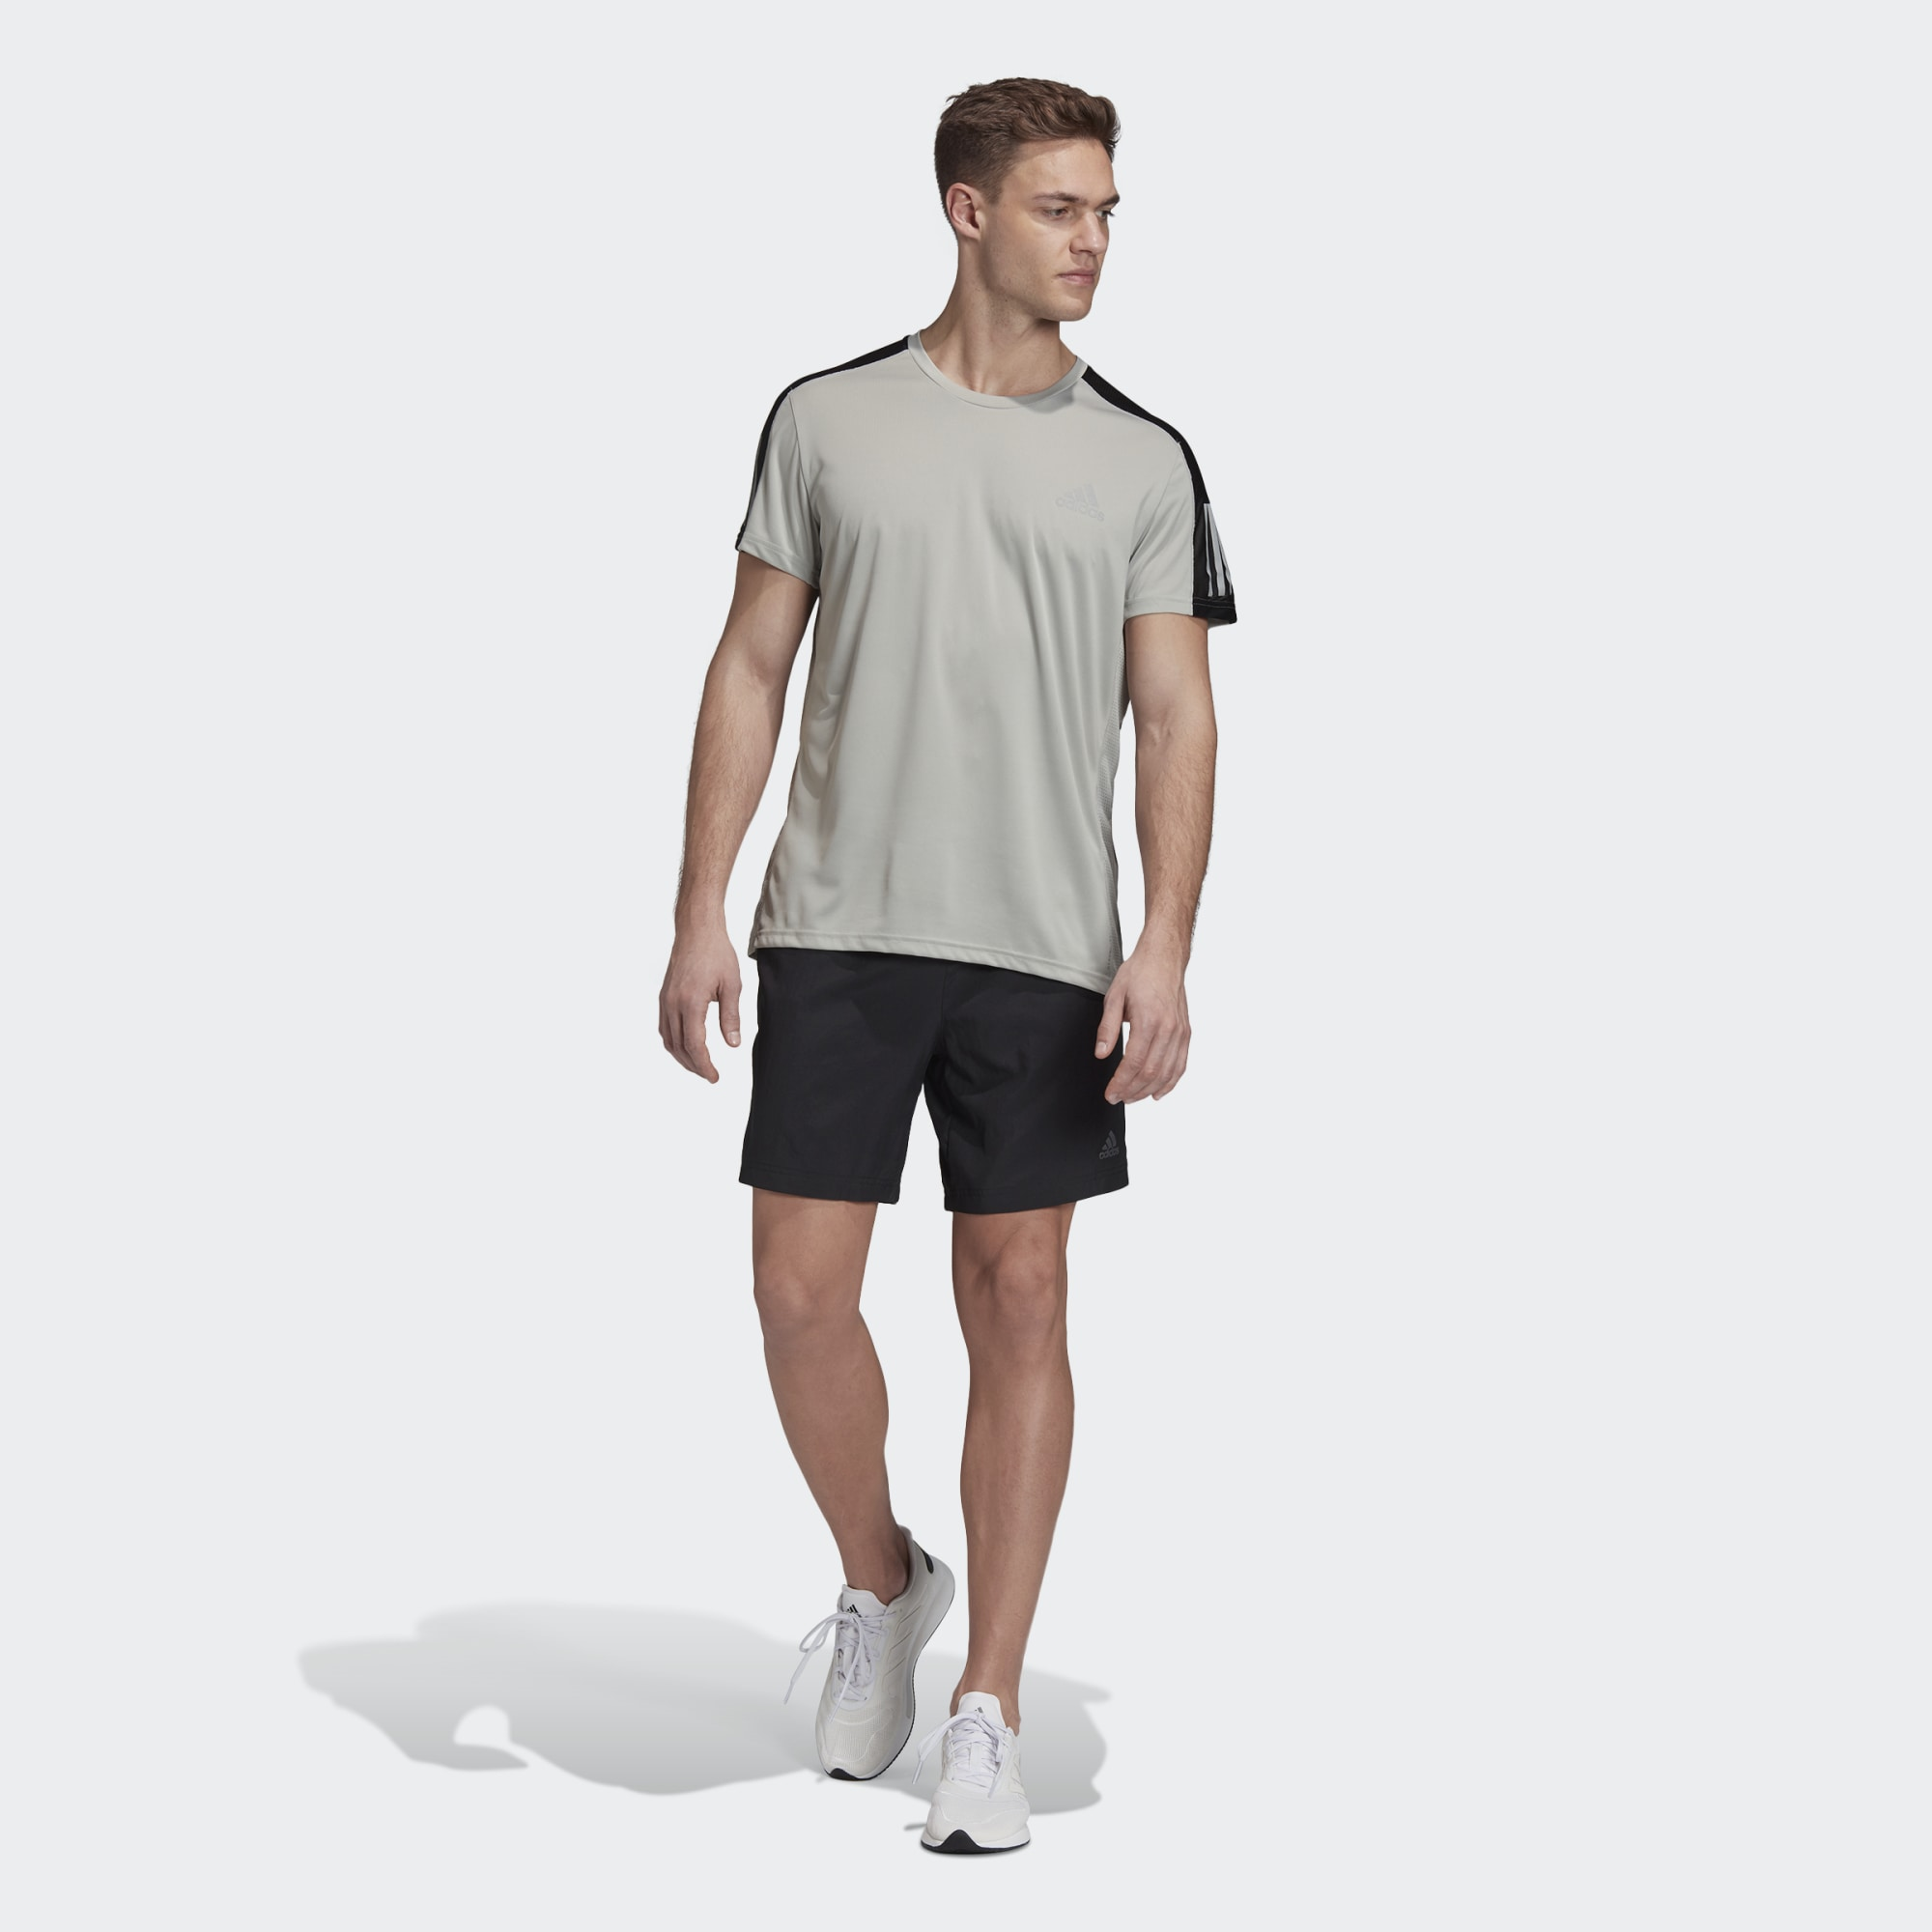 CAMISA ADIDAS OWN THE RUN FT1432 VERDE MUSGO MASCULINO